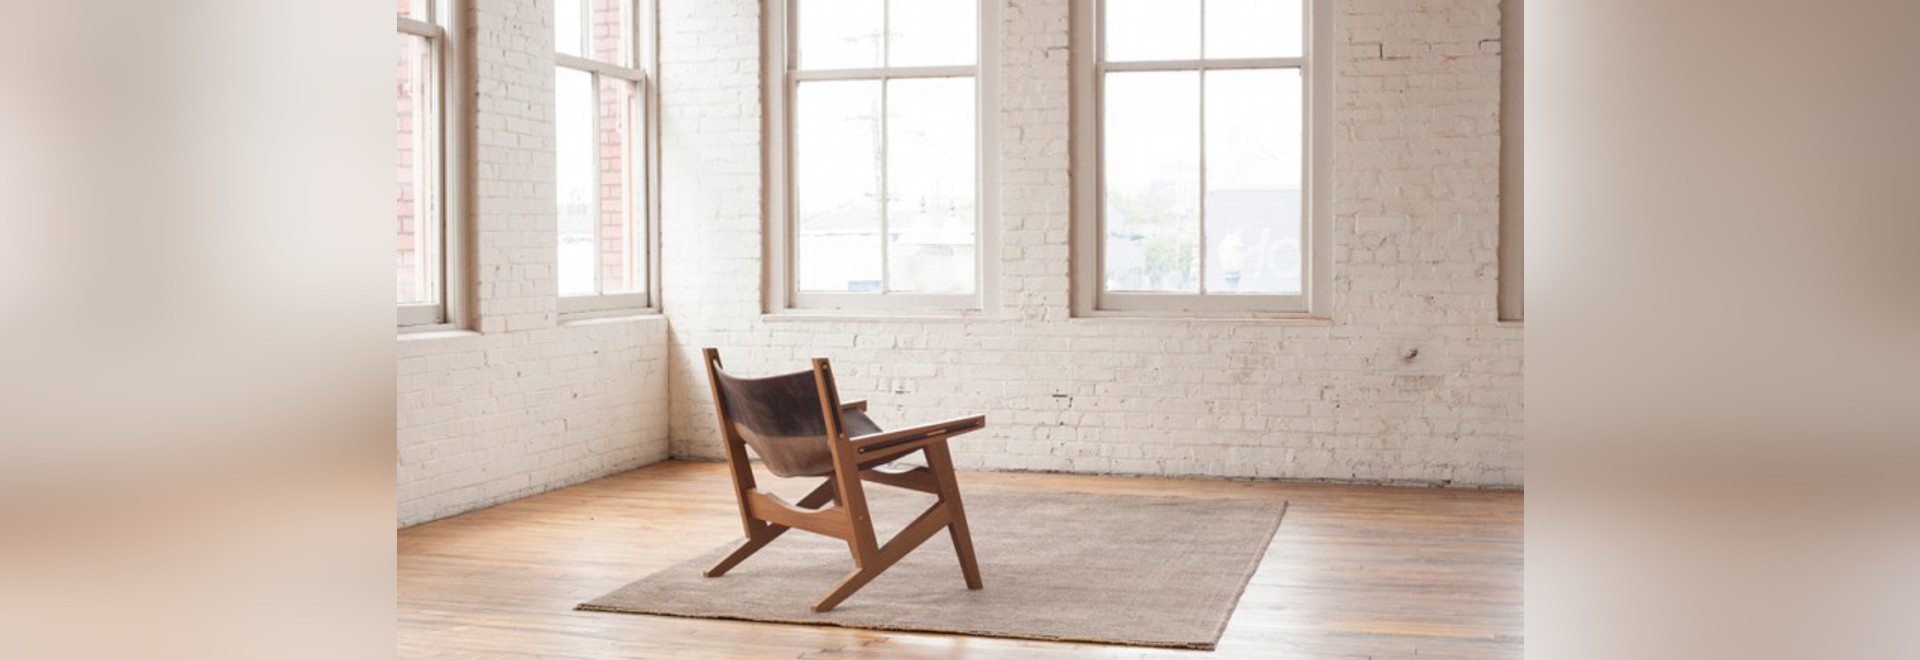 PENINSULA CHAIR BY PHLOEM STUDIO